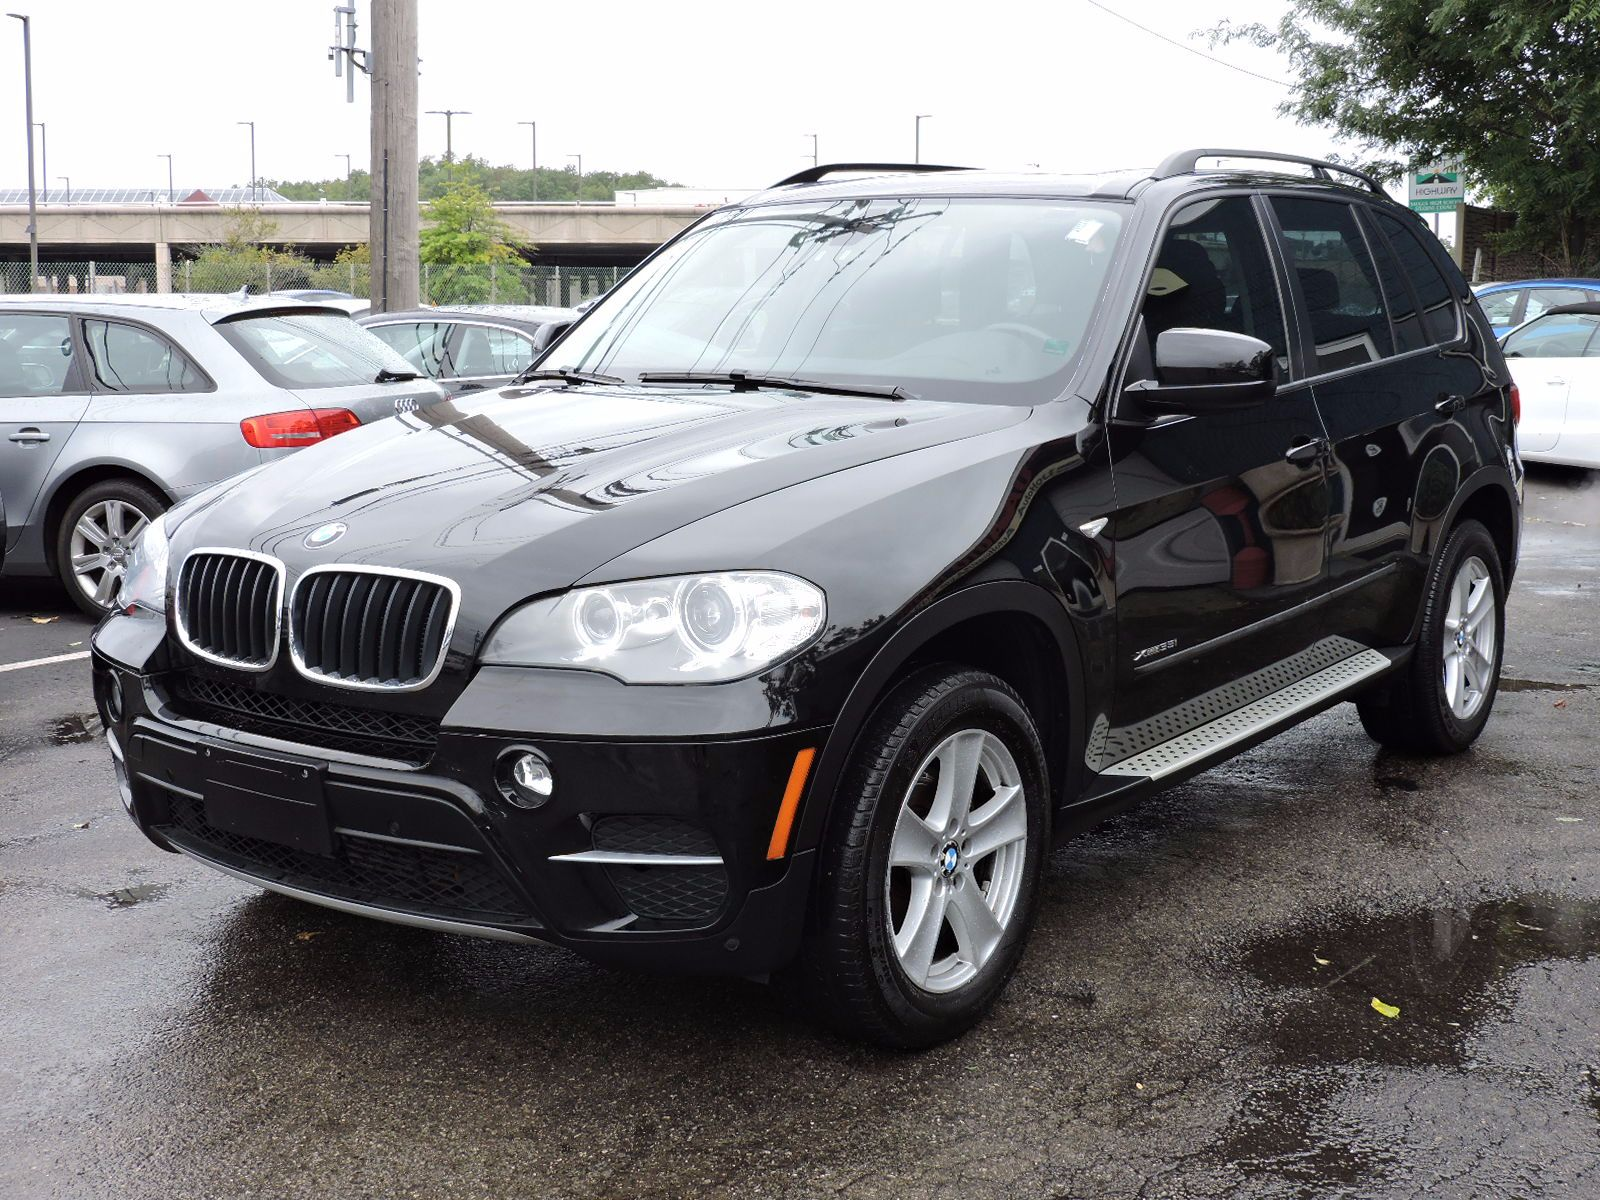 2012 BMW X5 xDrive 35i Premium - All Wheel Drive - Navigation